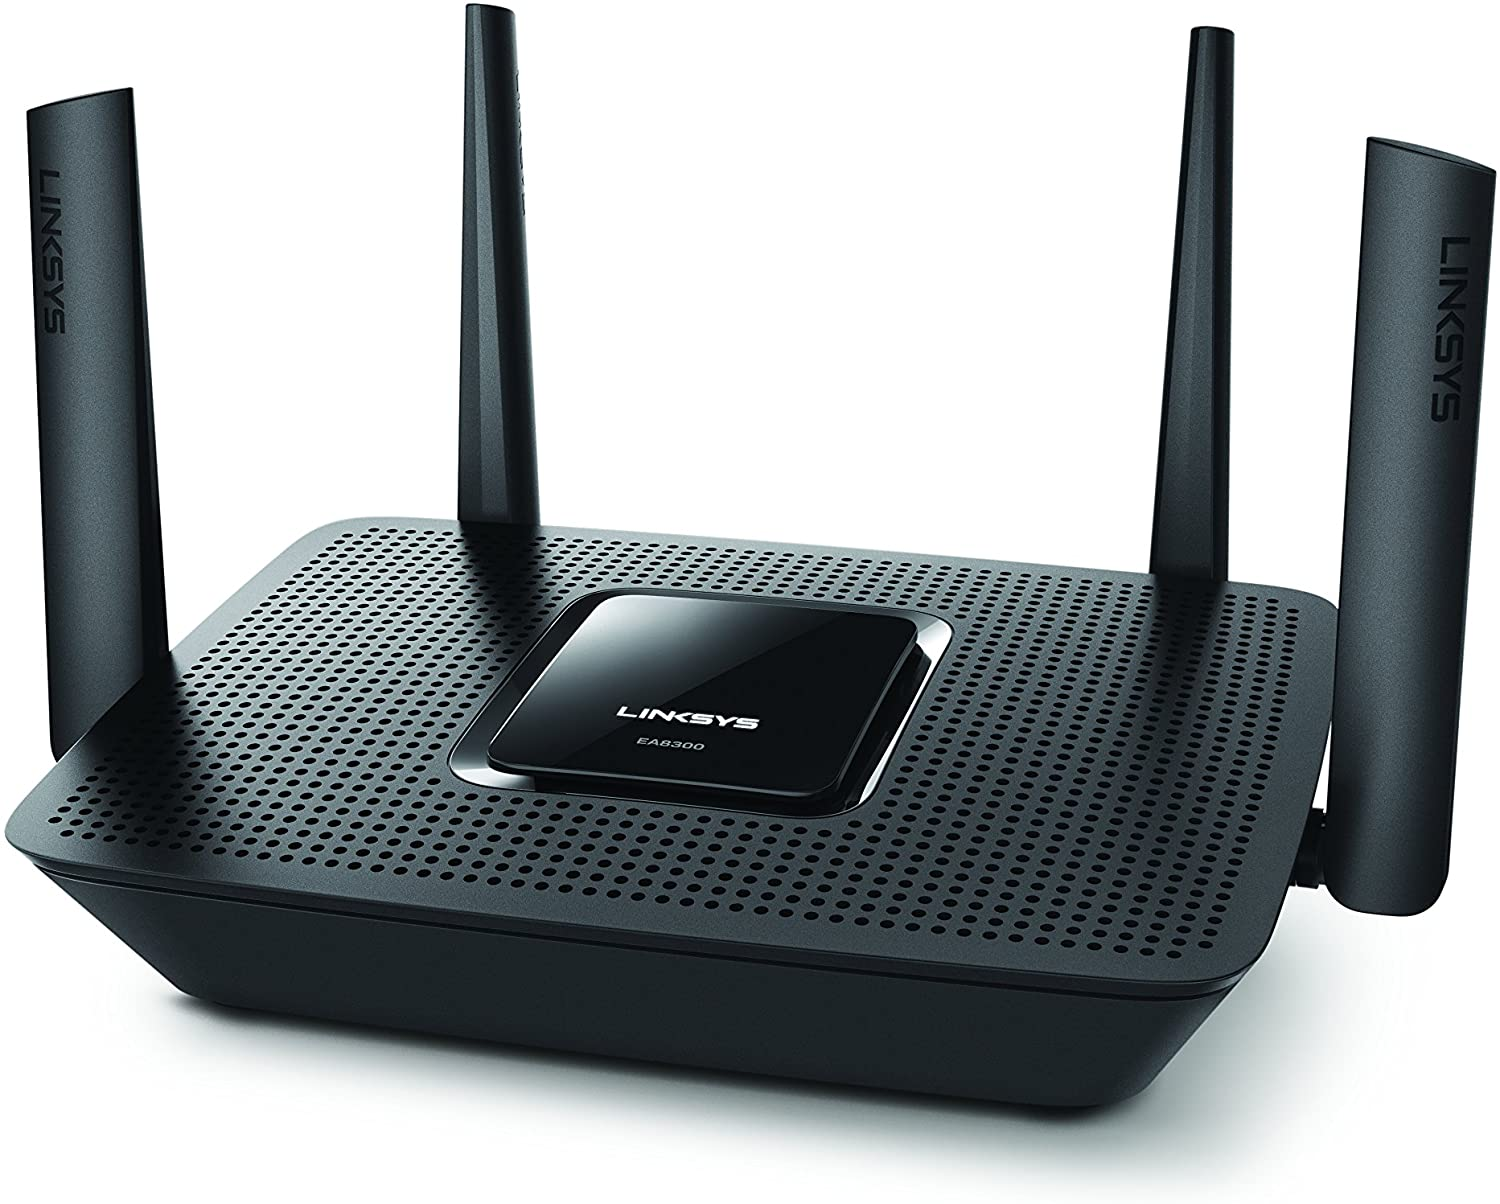 7 Best Linksys Router Reviewed In 2020 5